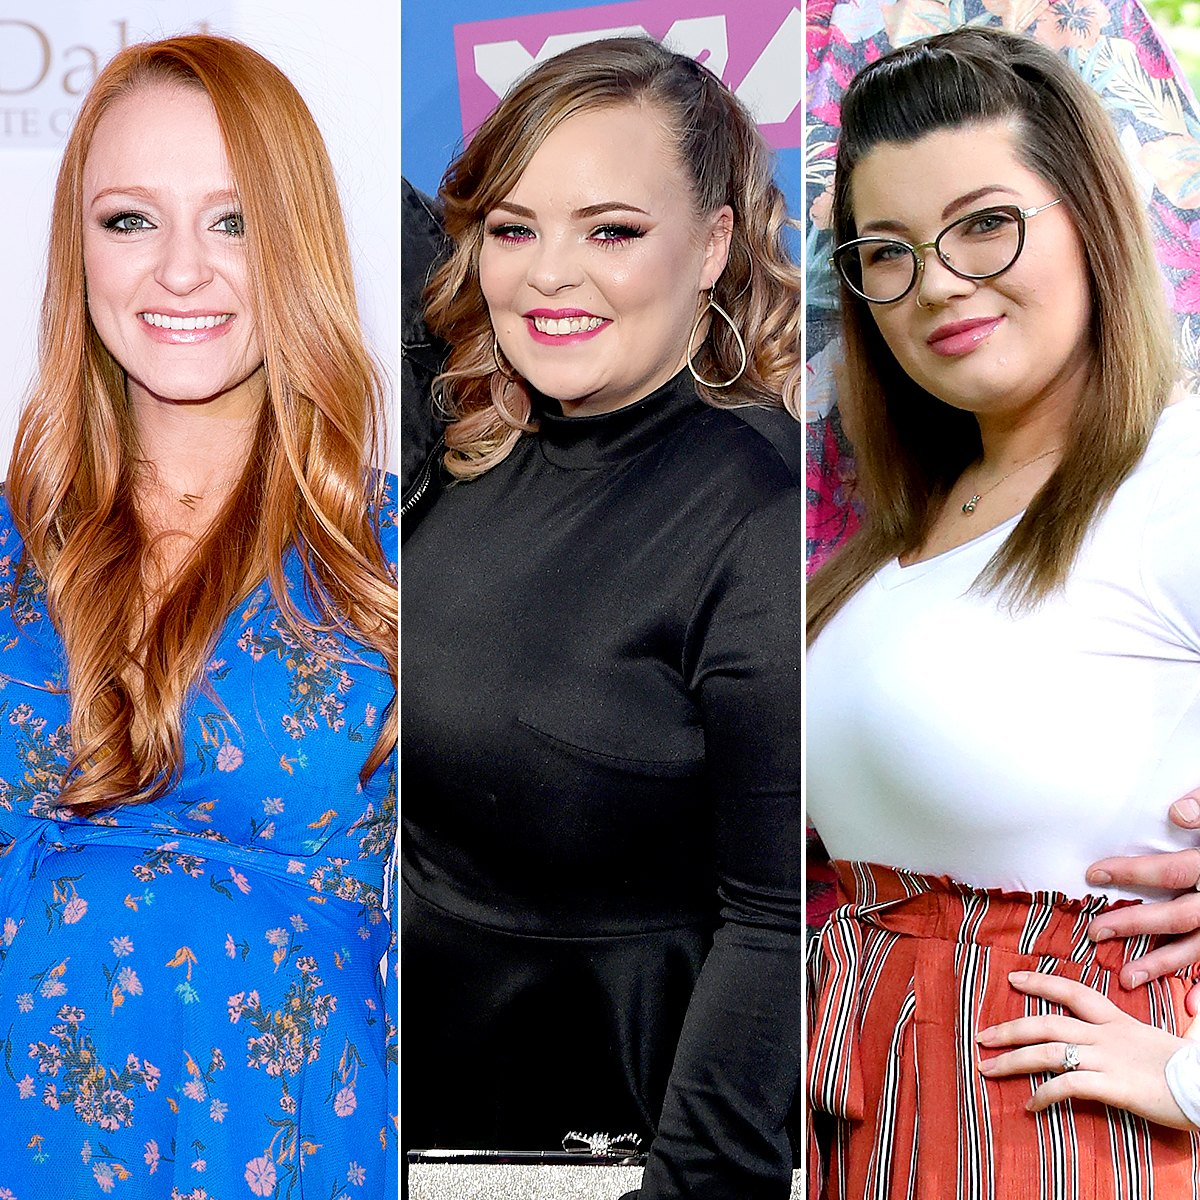 amber-portwood-and-maci-bookout-defend-themselves-after-catelynn-lowell-claims-they-failed-to-reach-out-after-her-miscarriage